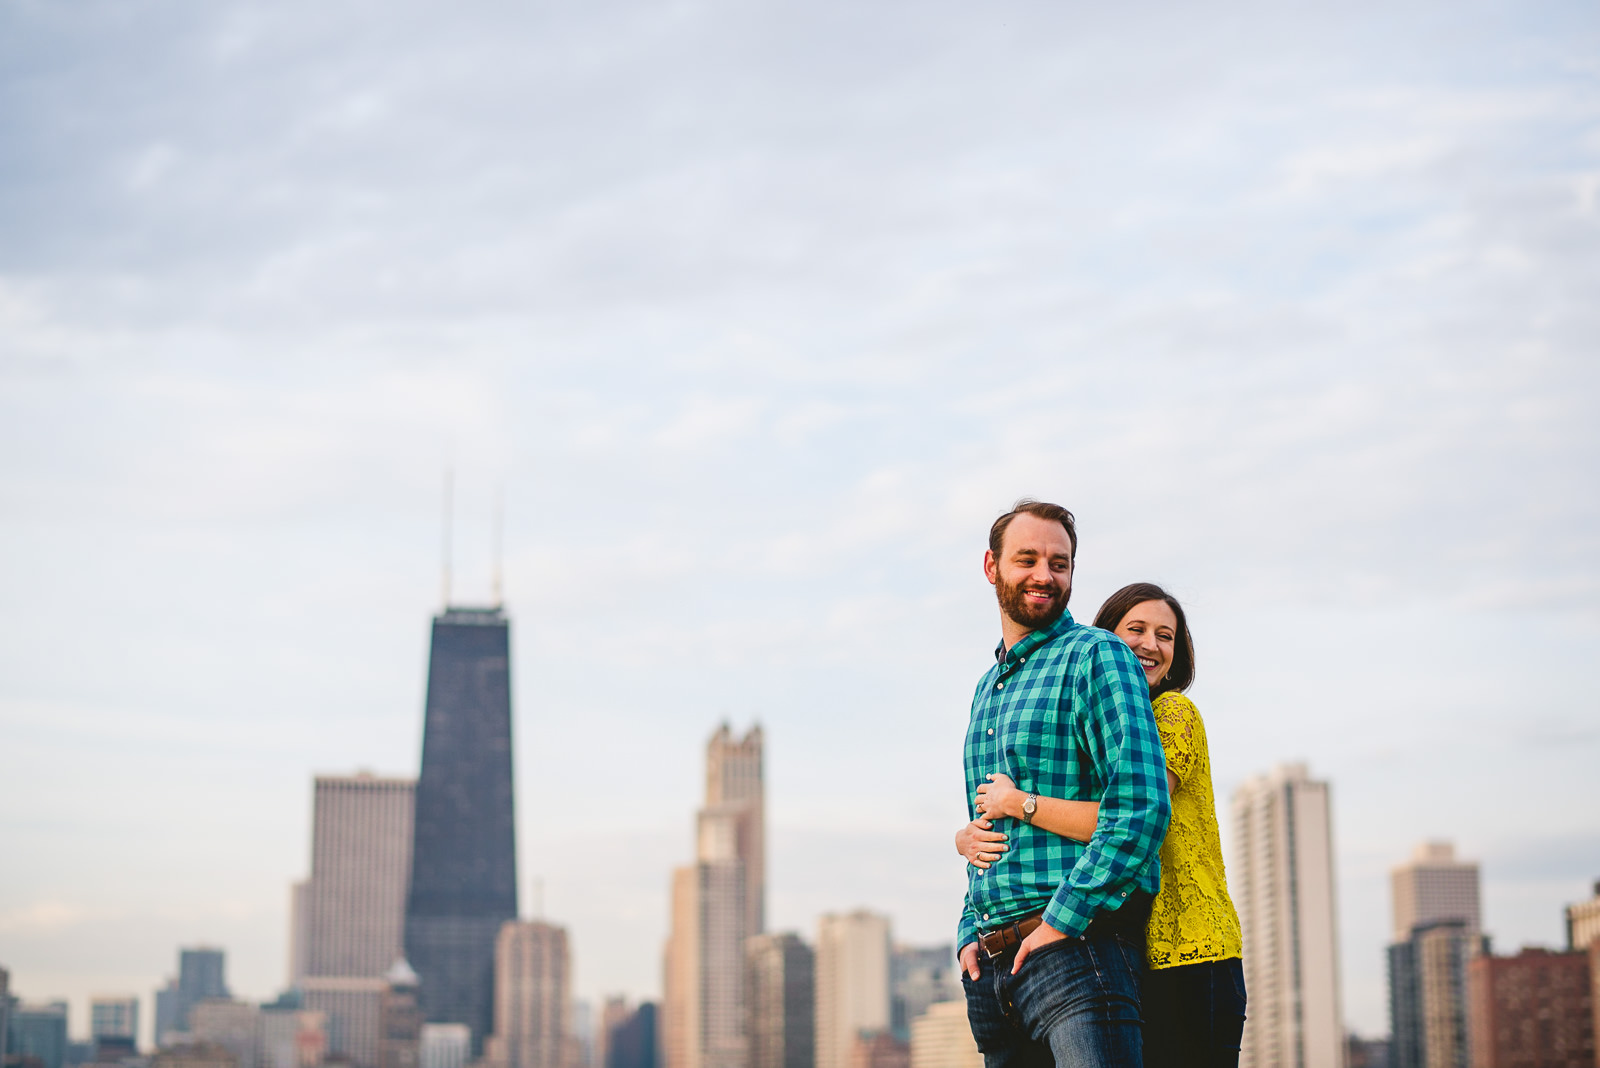 16 chicago engagement photos inspiration - Chicago Skyline Engagement Session Photographer // Rachel + Jared